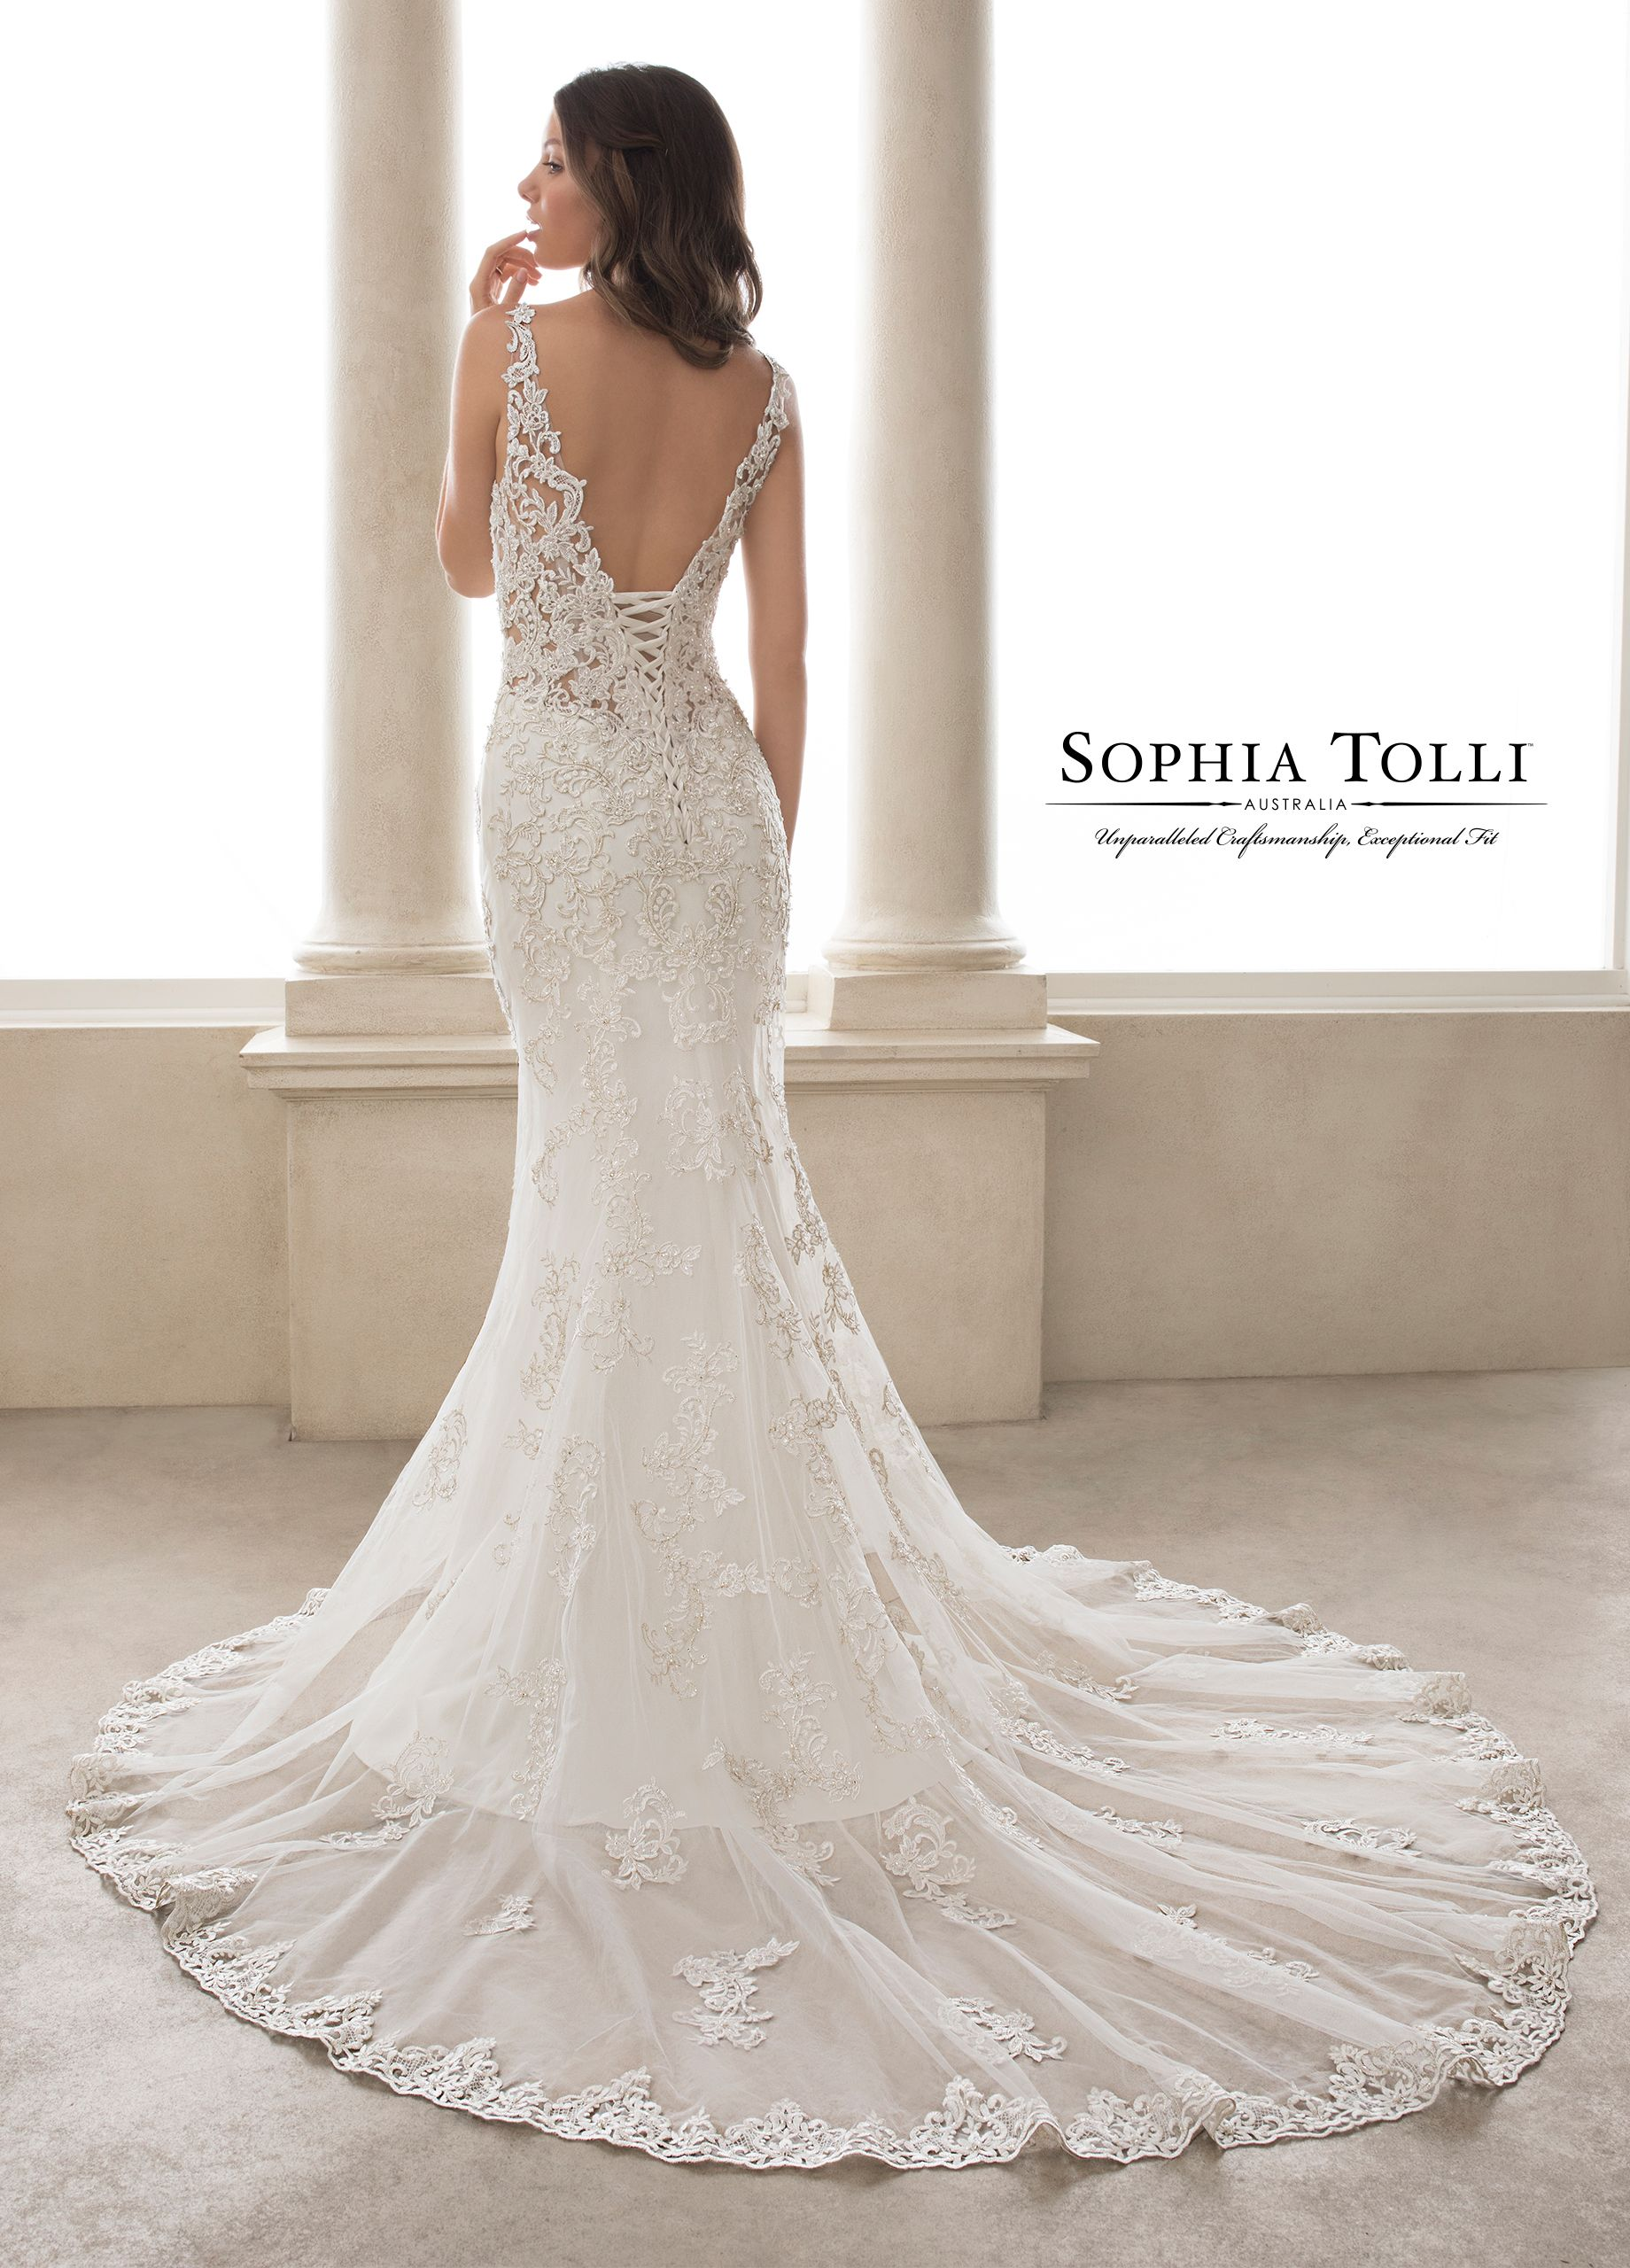 ac1cc104382 Wedding Dress Gallery · Beaded Lace · Sophia Tolli Y21817 Turquoise -  Celebrate your figure in seductive Turquoise